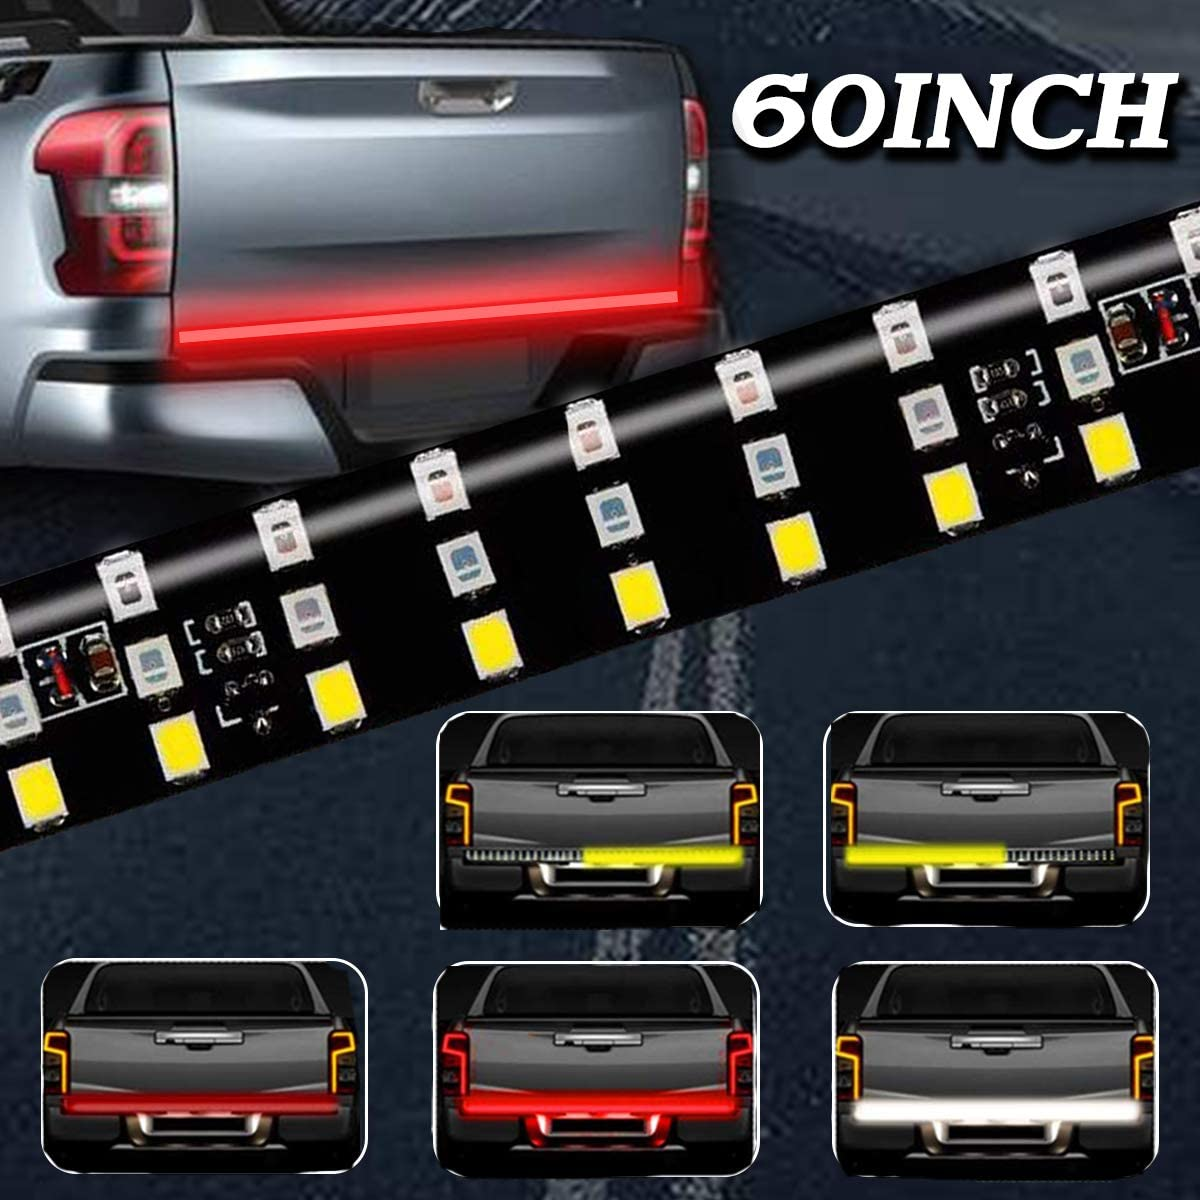 3R 60 OPL-60SS Led Tailgate Light Strip 60 Inch 432Pcs LED Flexible Triple Row Bar No Need Drill Install Turn Signal Brake Reverse Tail Lights for Pickup Trailer SUV RV VAN Car White//Red//Yellow